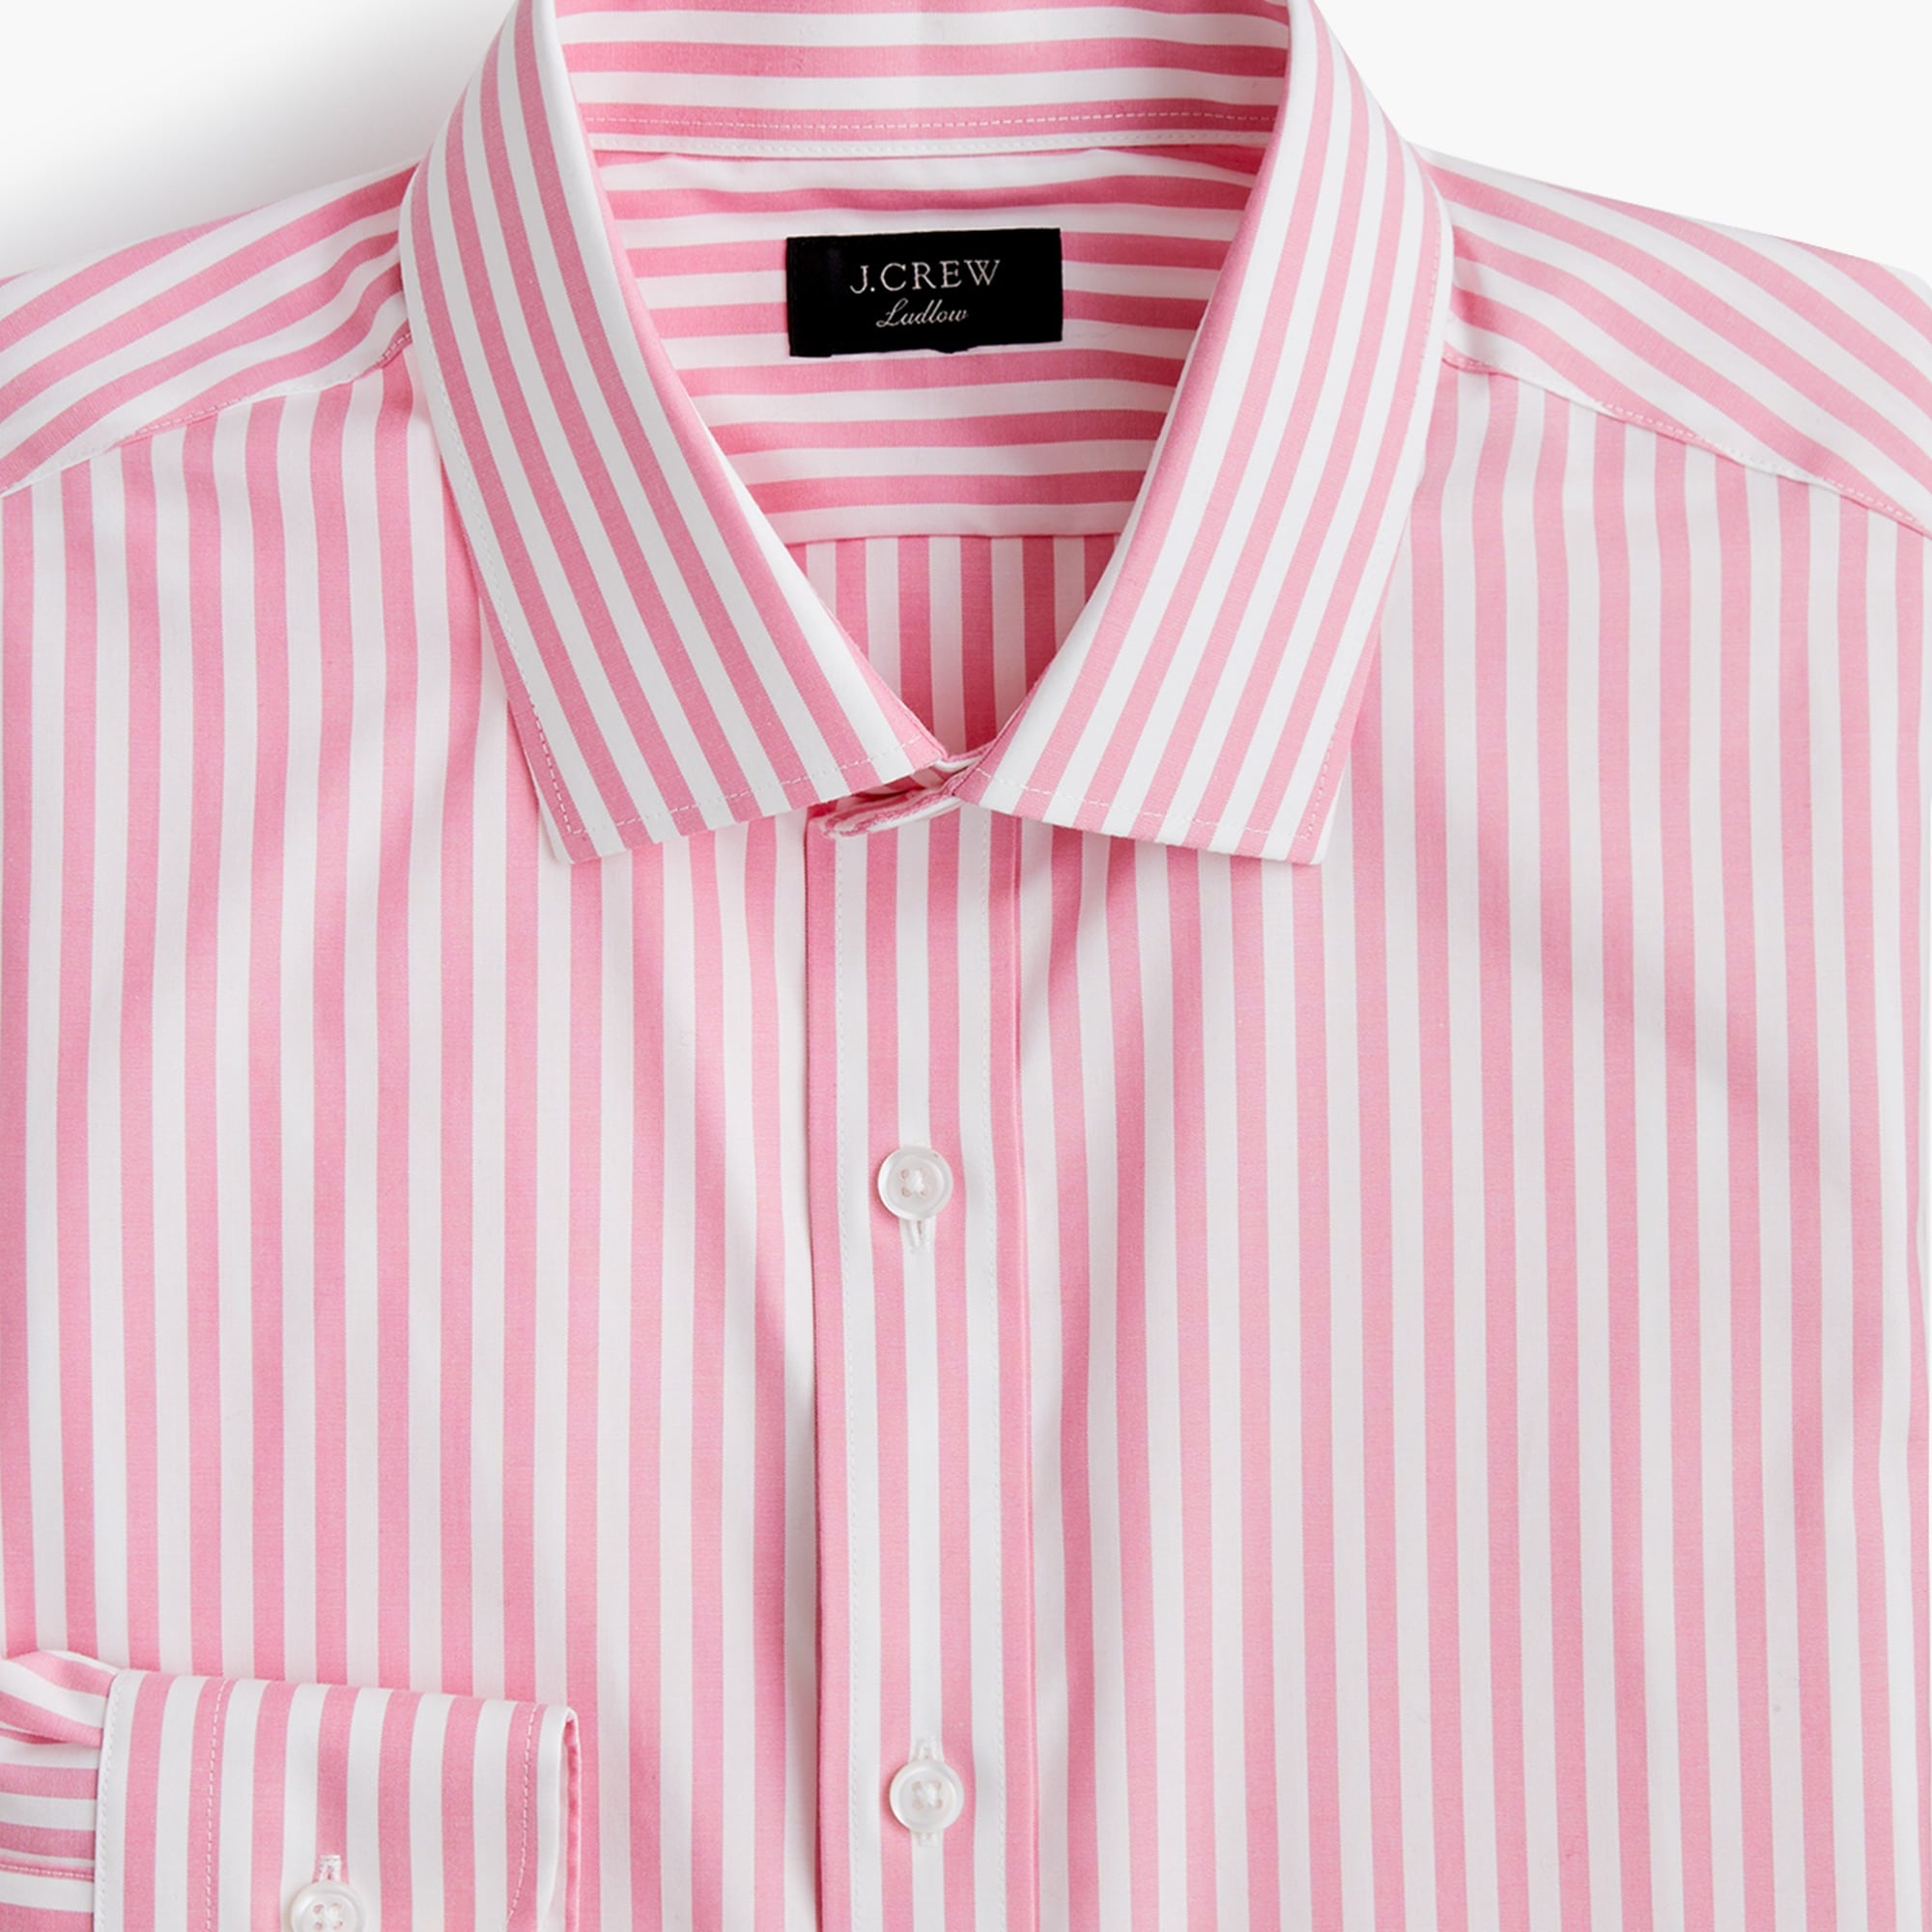 mens Ludlow stretch two-ply easy-care cotton dress shirt in pink stripe